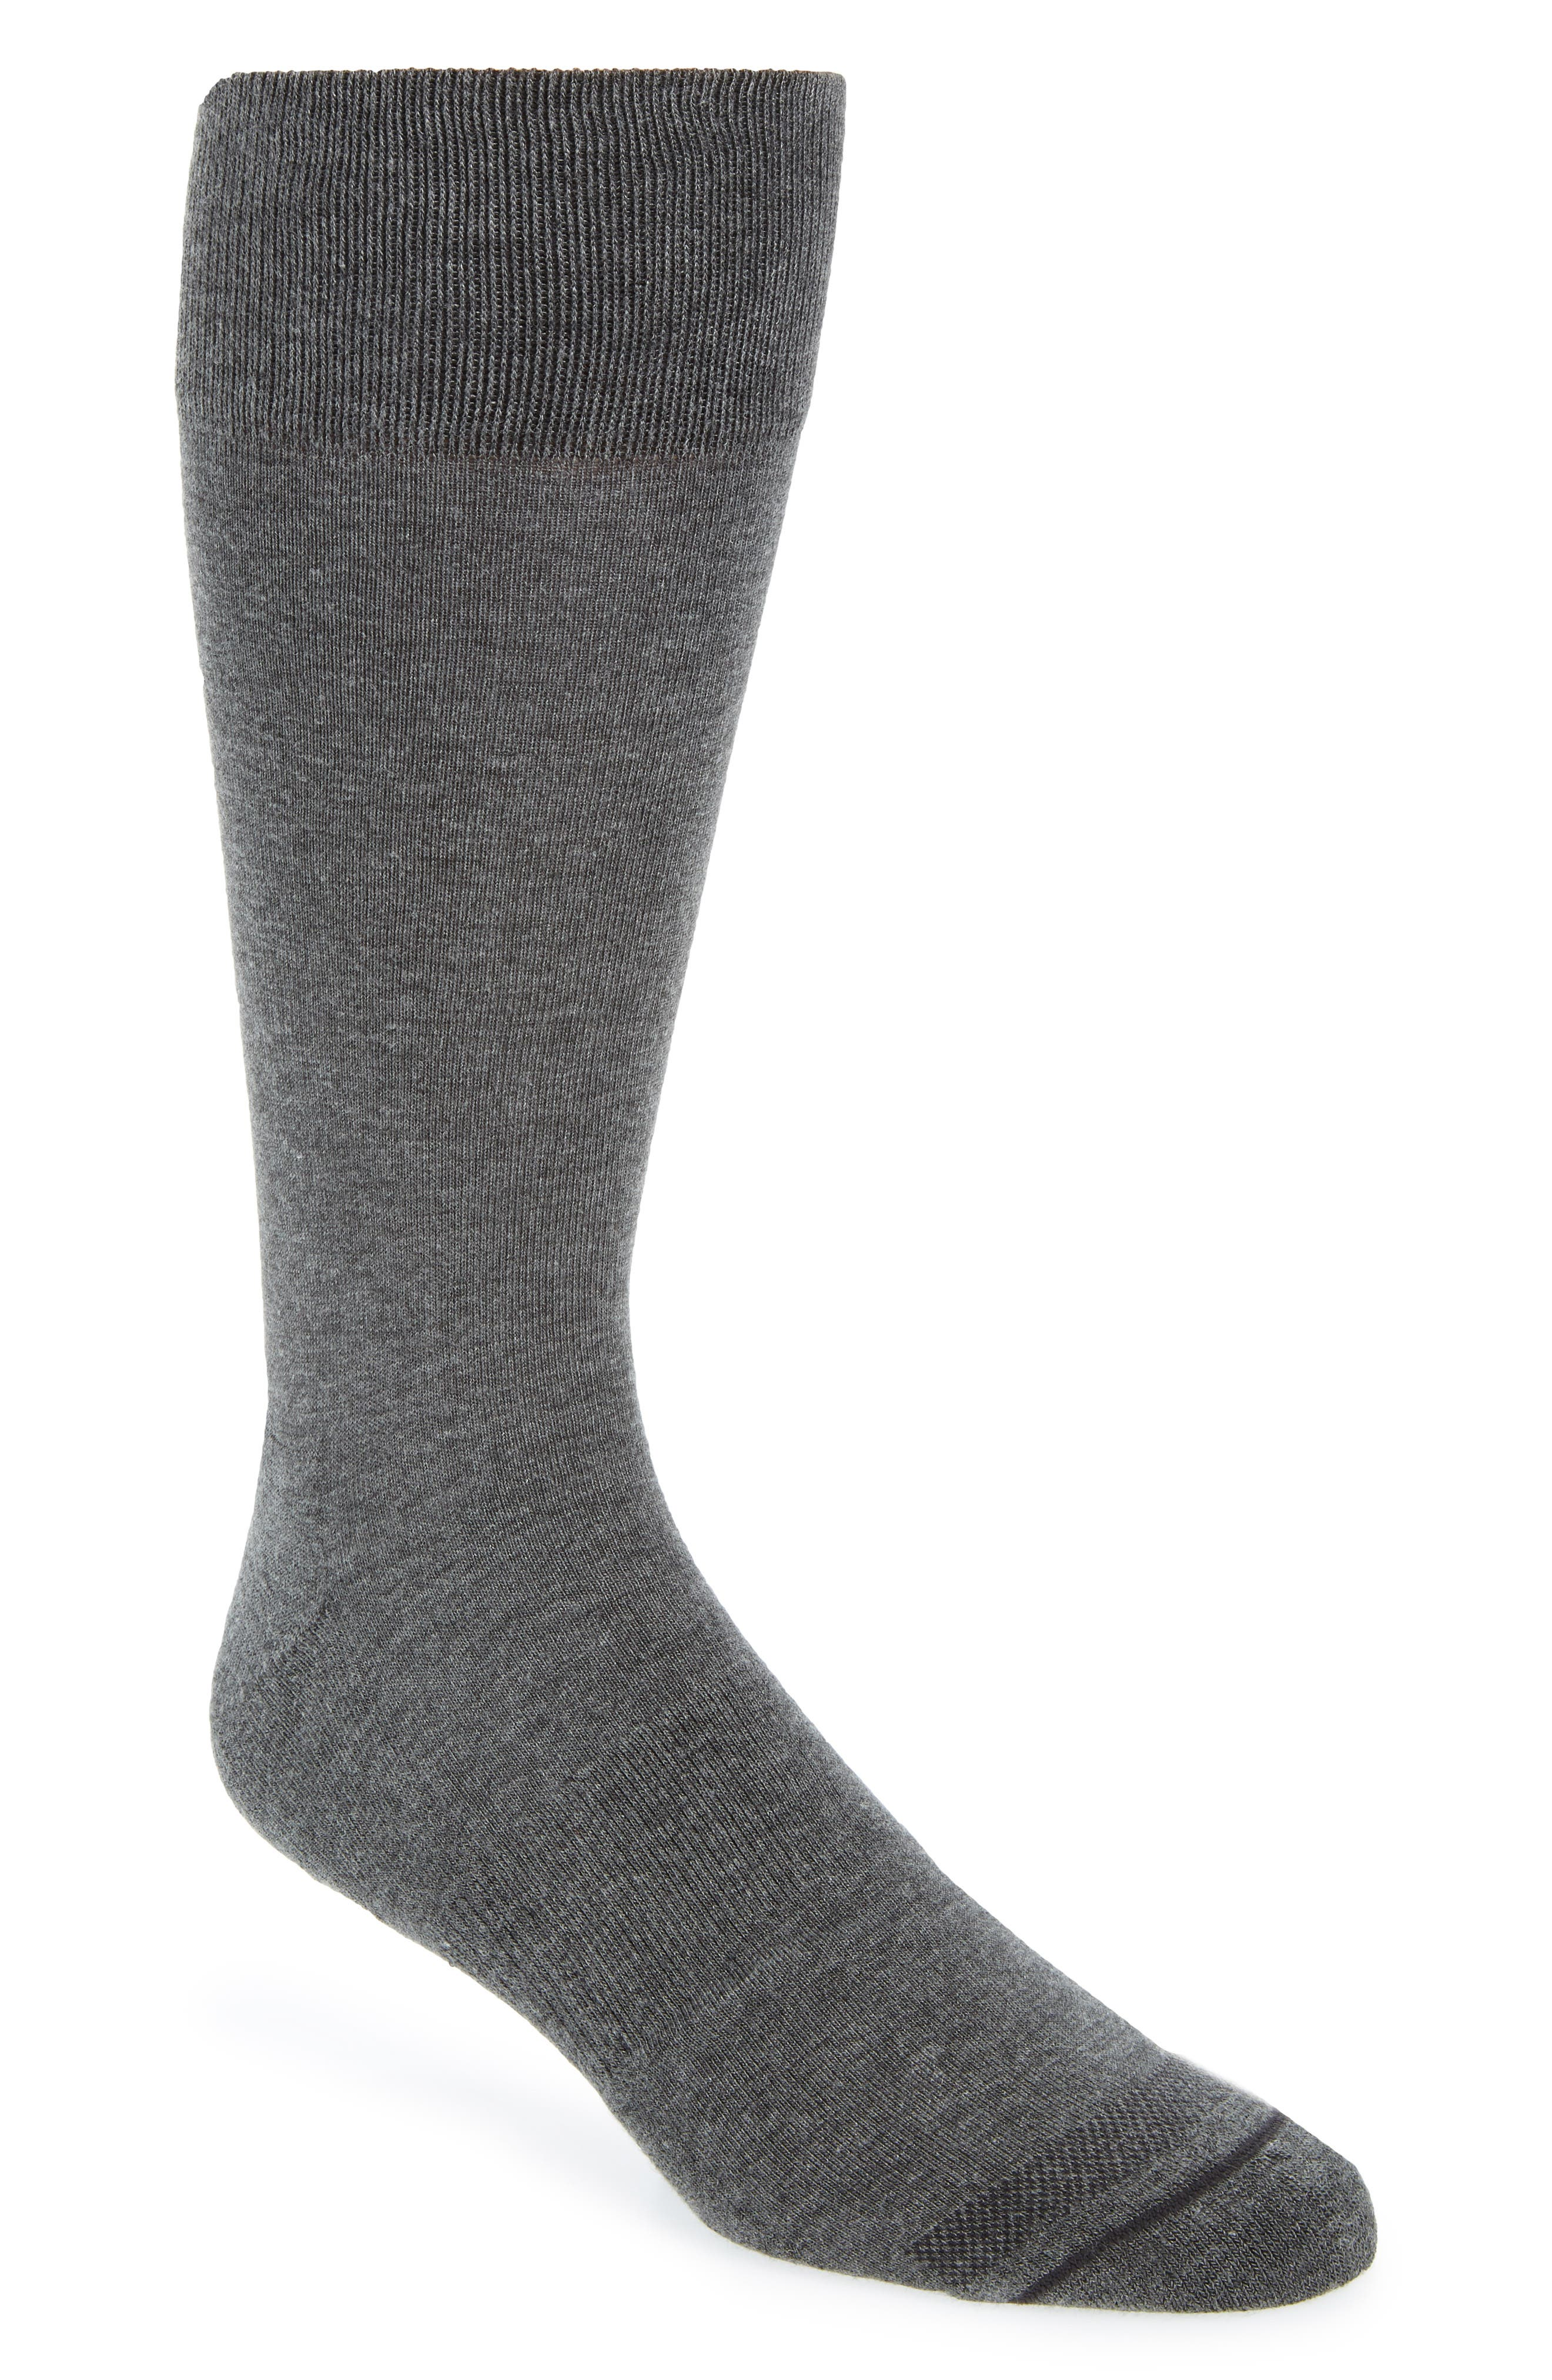 Heather Socks,                             Main thumbnail 1, color,                             CHARCOAL HEATHER